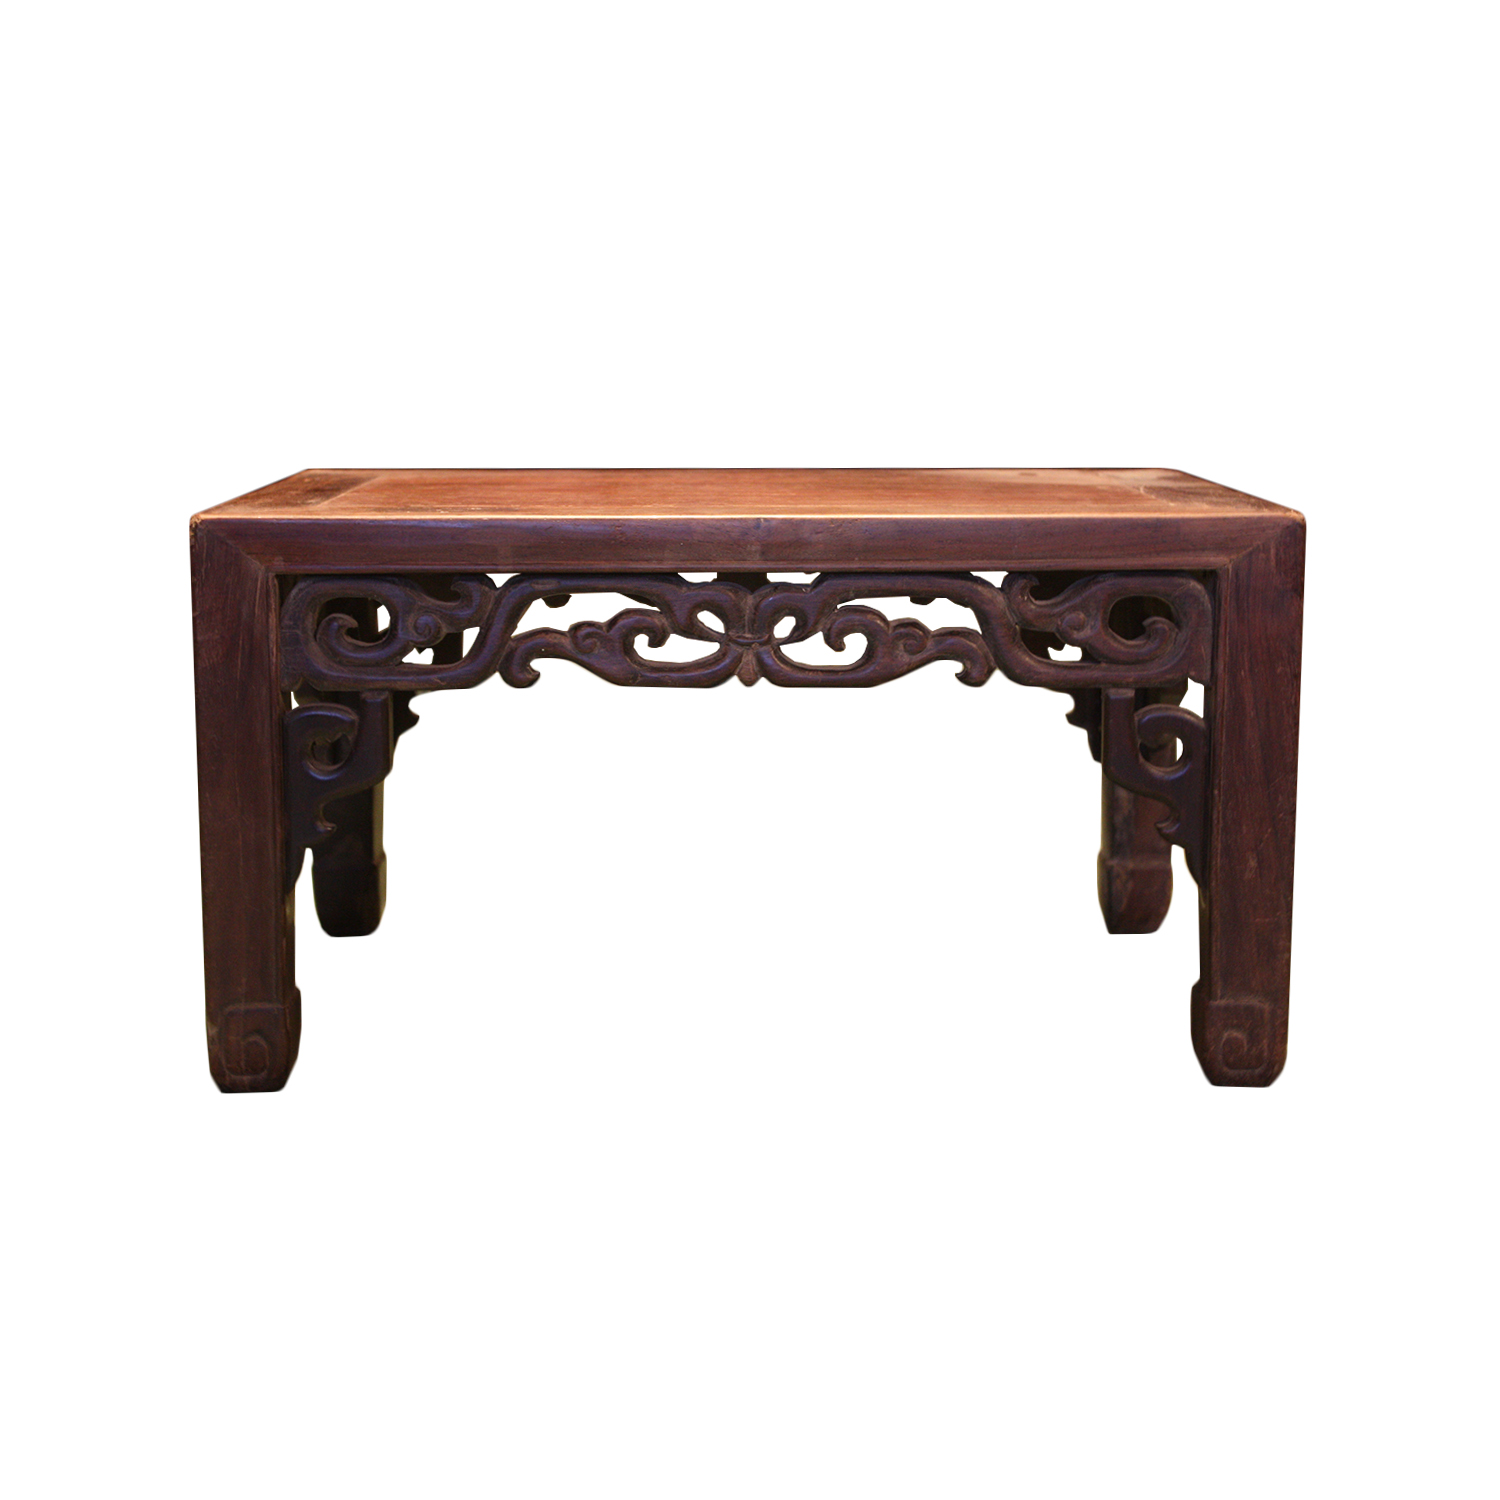 Japanese tea table dimensions -  14740 Antique Low Kang Table Made Of Exotic Hardwood